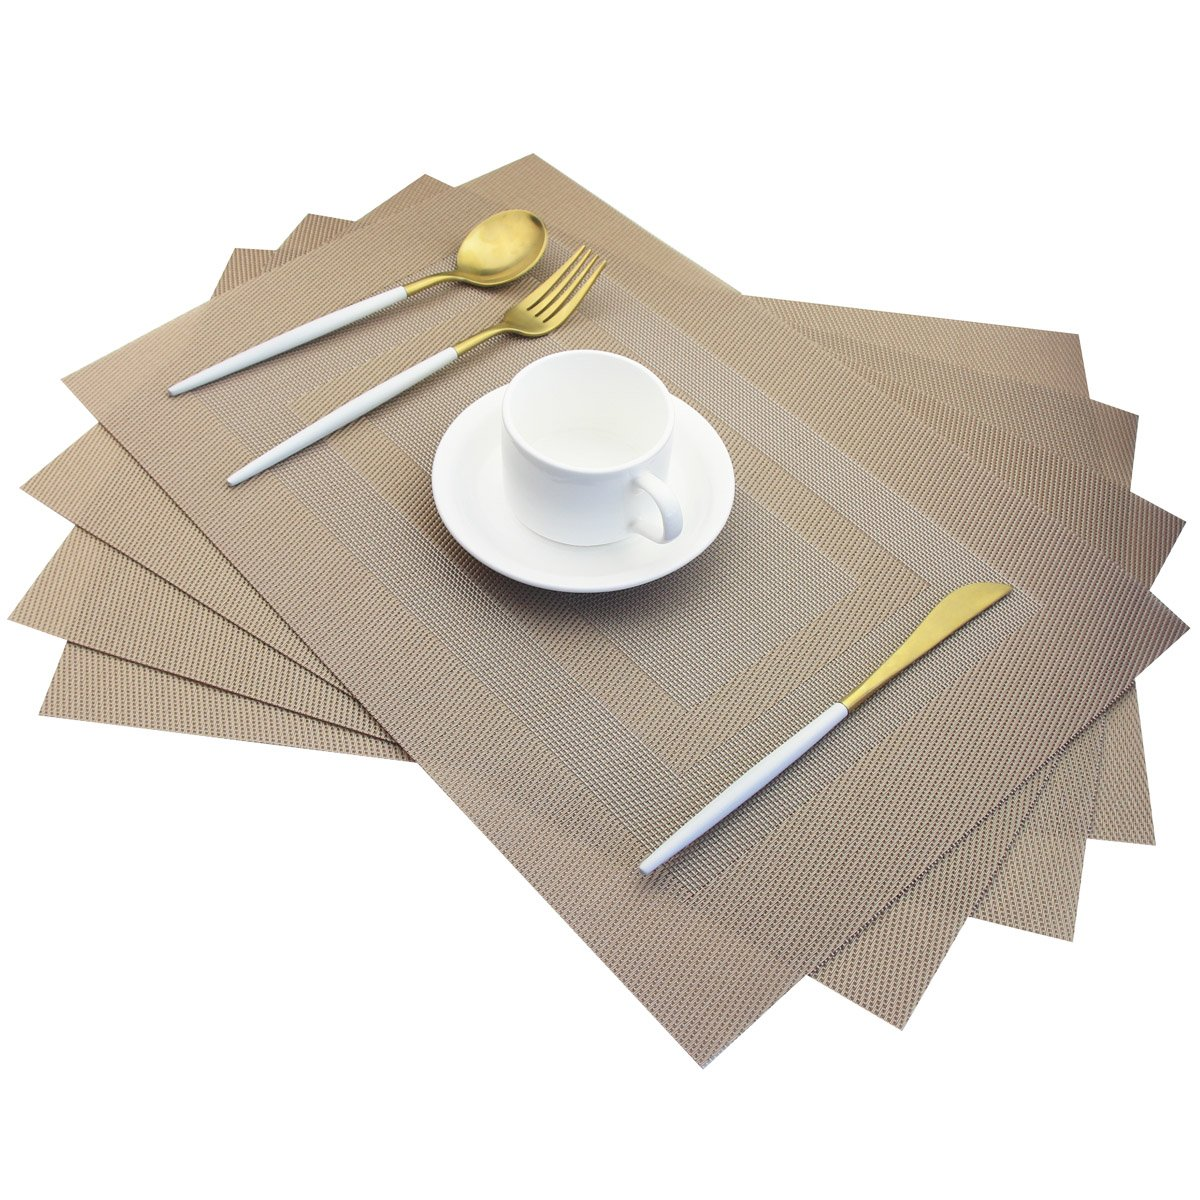 Placemats,Heat Insulation Non Slip Plastic Placemats,Washable Easy to Clean Woven Vinyl Kitchen Stain Resistant Placemats for Dining Table Set of 4(Beige) Pigchcy